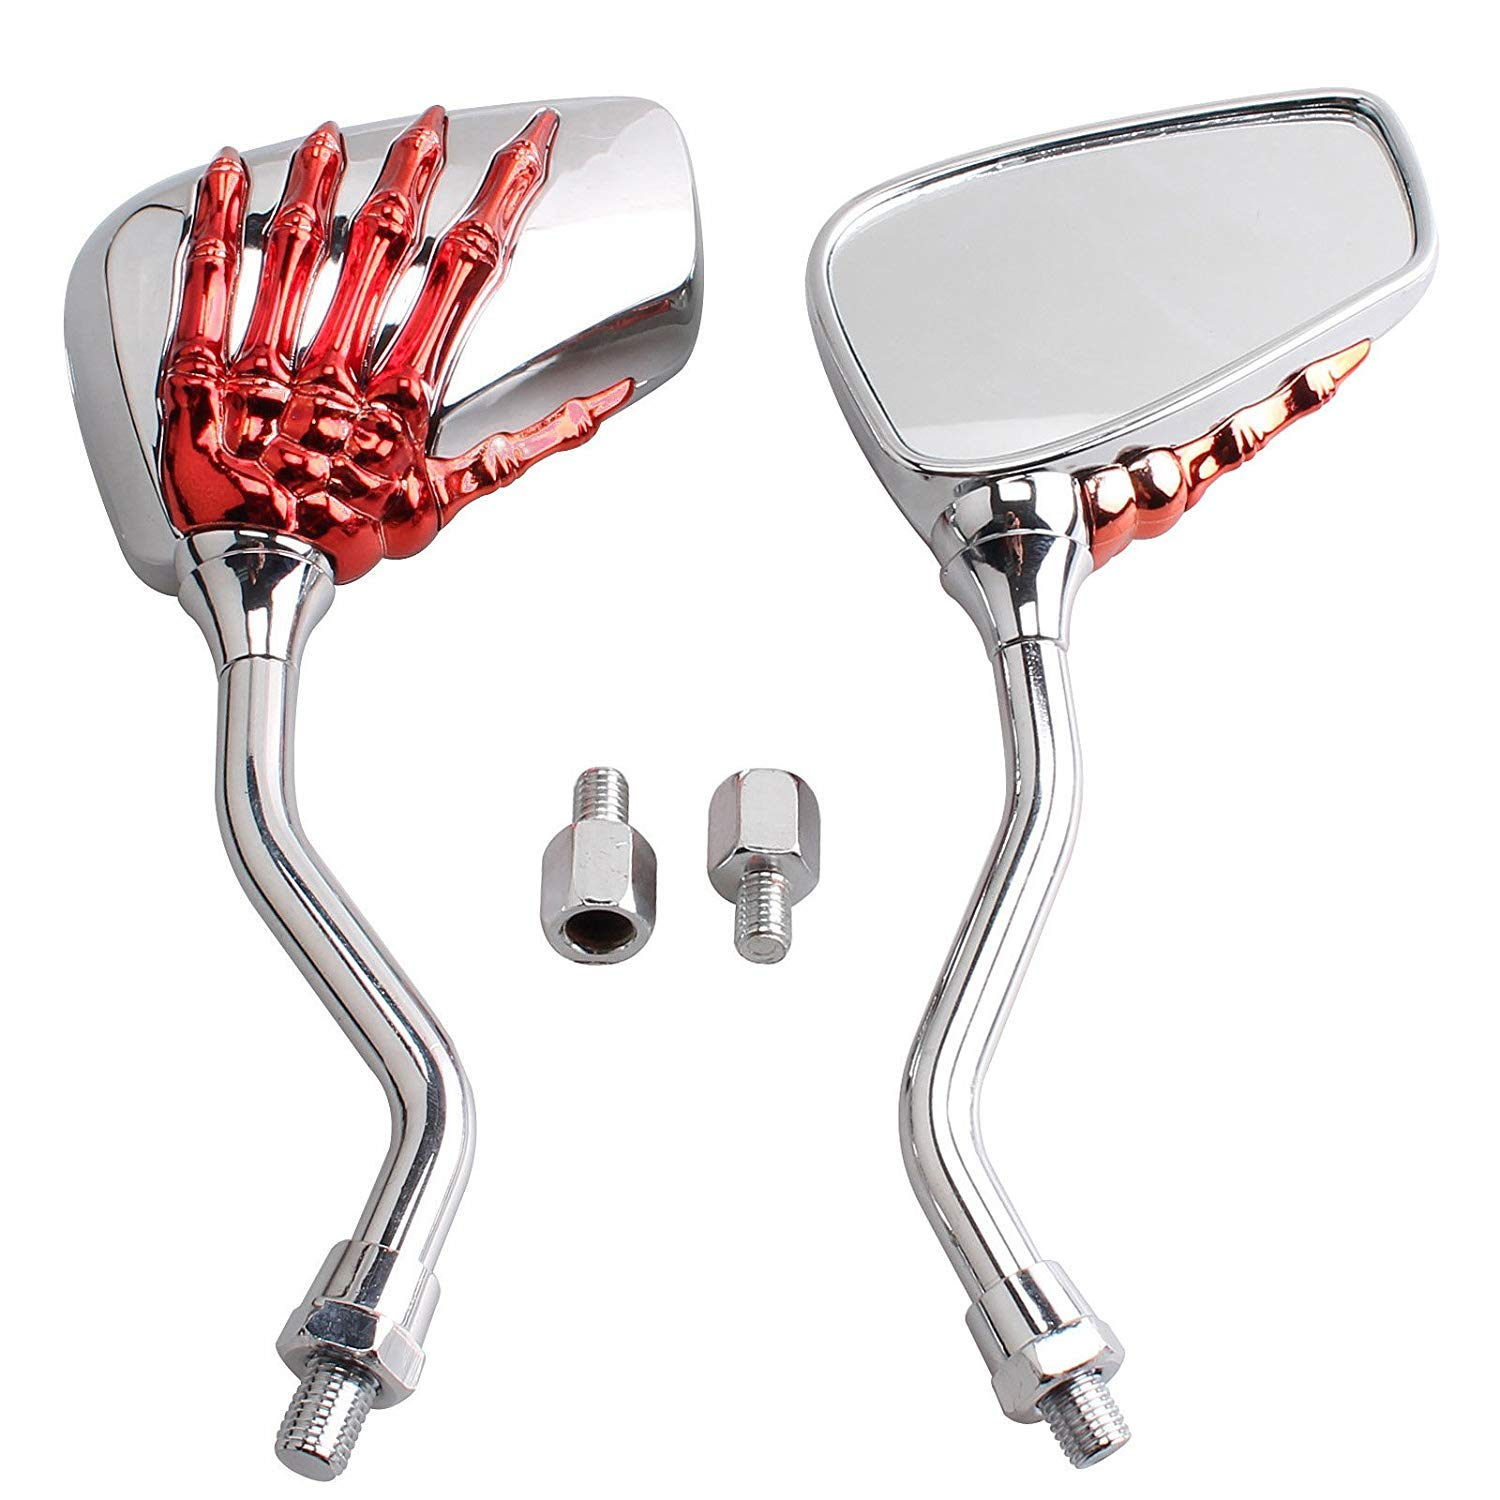 2PCS//set Foldable Rear Mirror Fit For Thread Bolts 8mm 10mm Motorcycle Dirt Bike